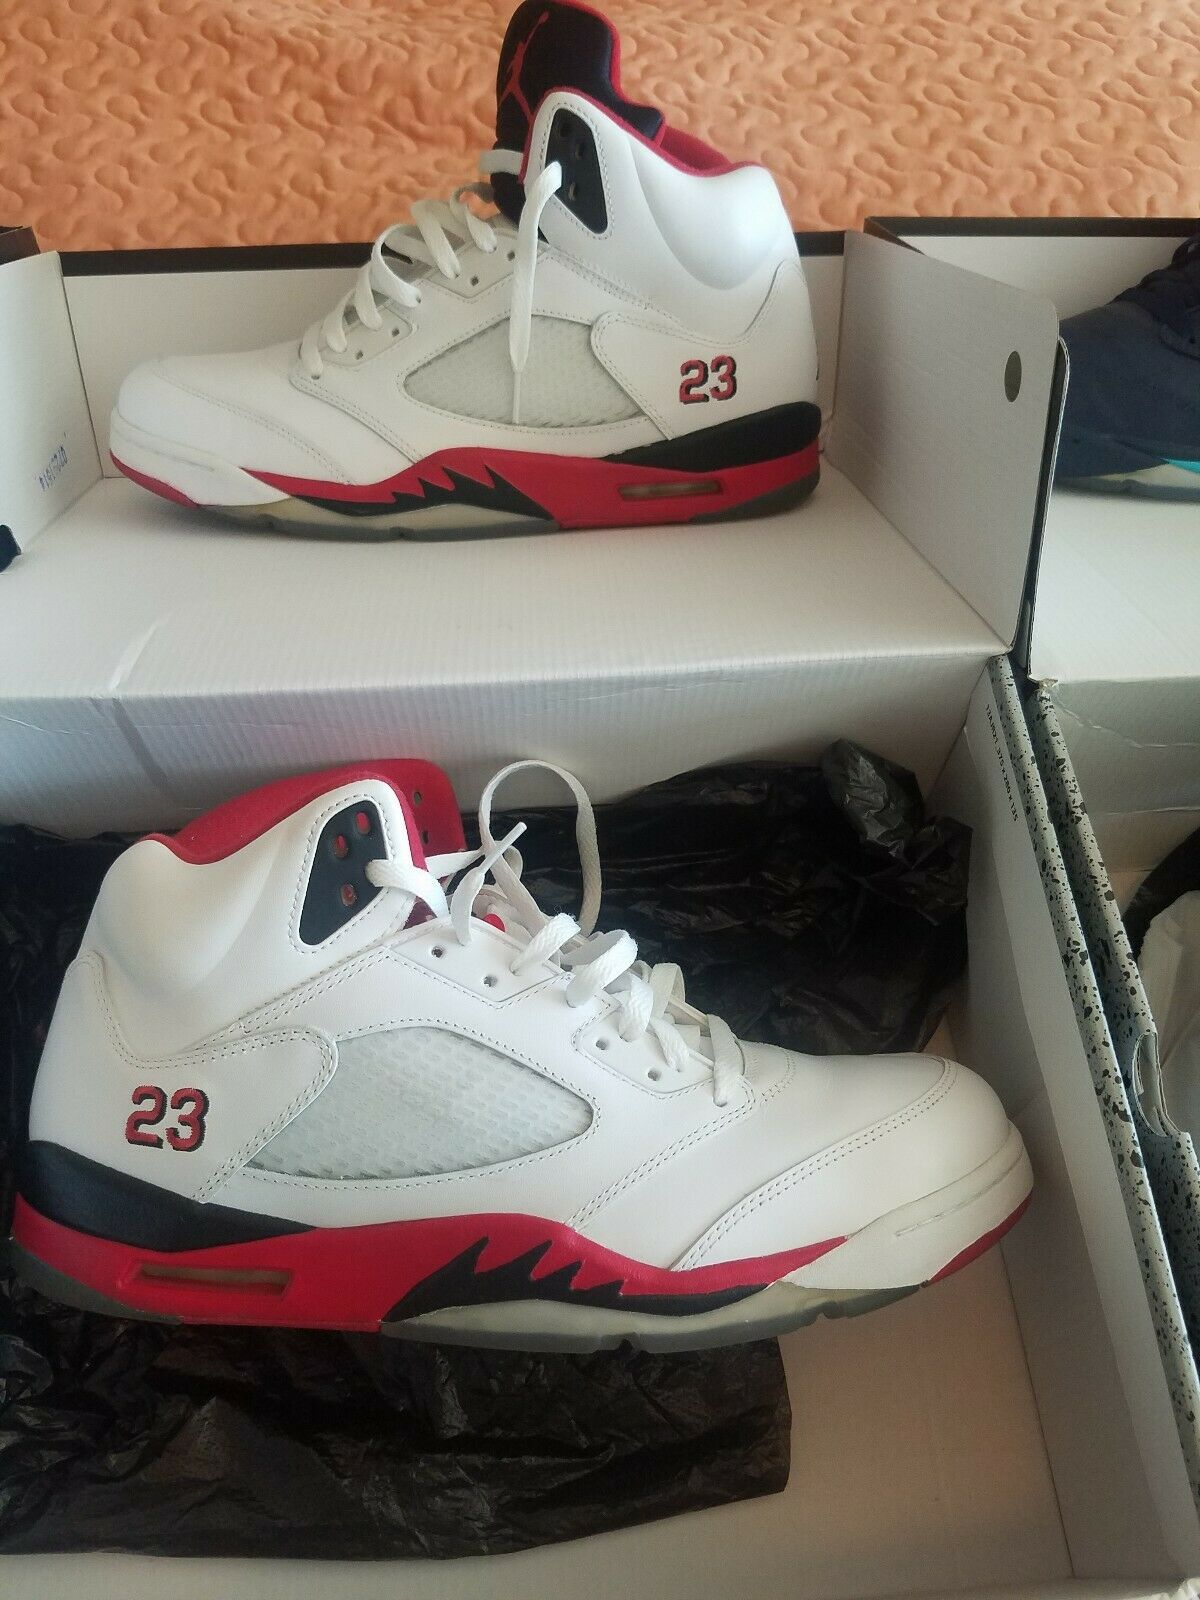 Jordan 5 Fire Red Size 13.5